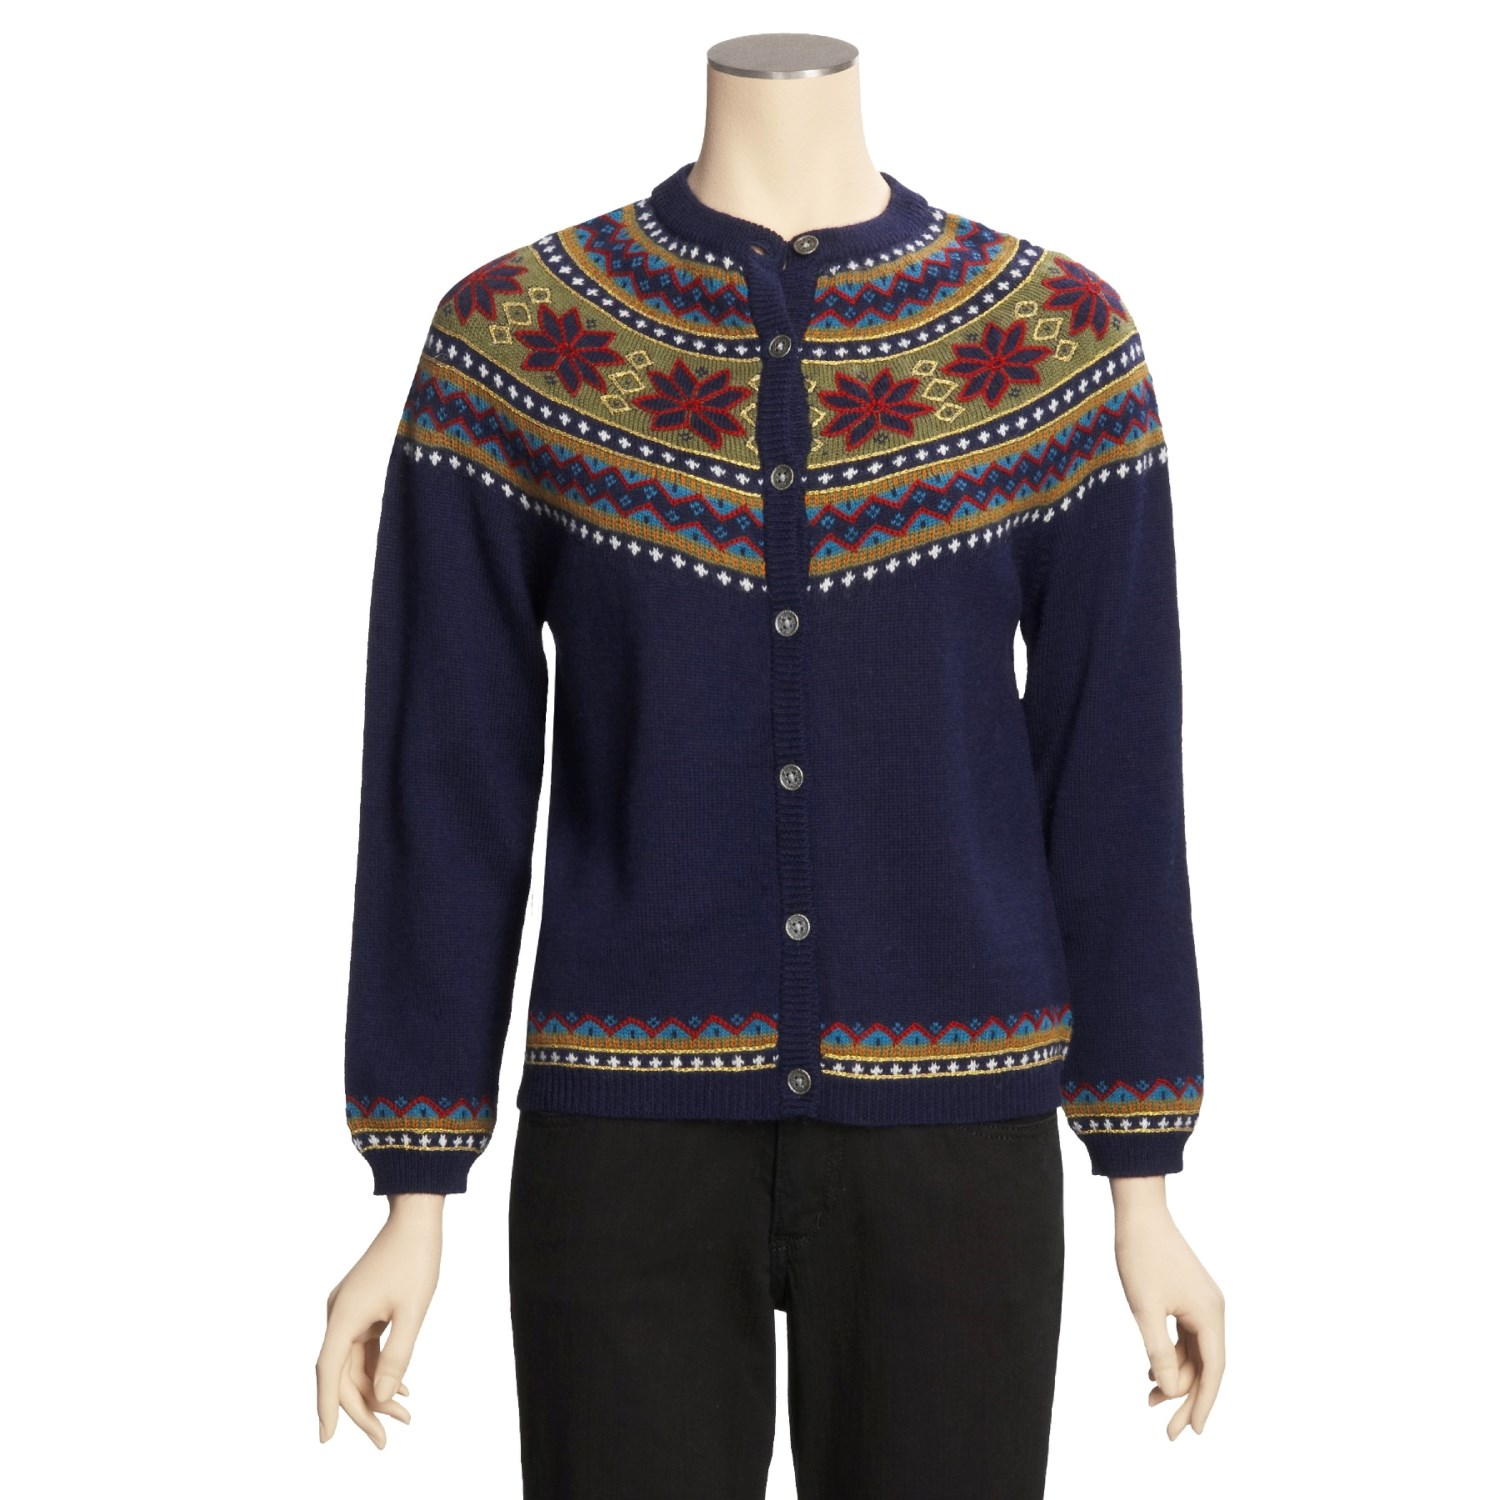 Shop women's sweaters at newuz.tk Discover a stylish selection of the latest brand name and designer fashions all at a great value.